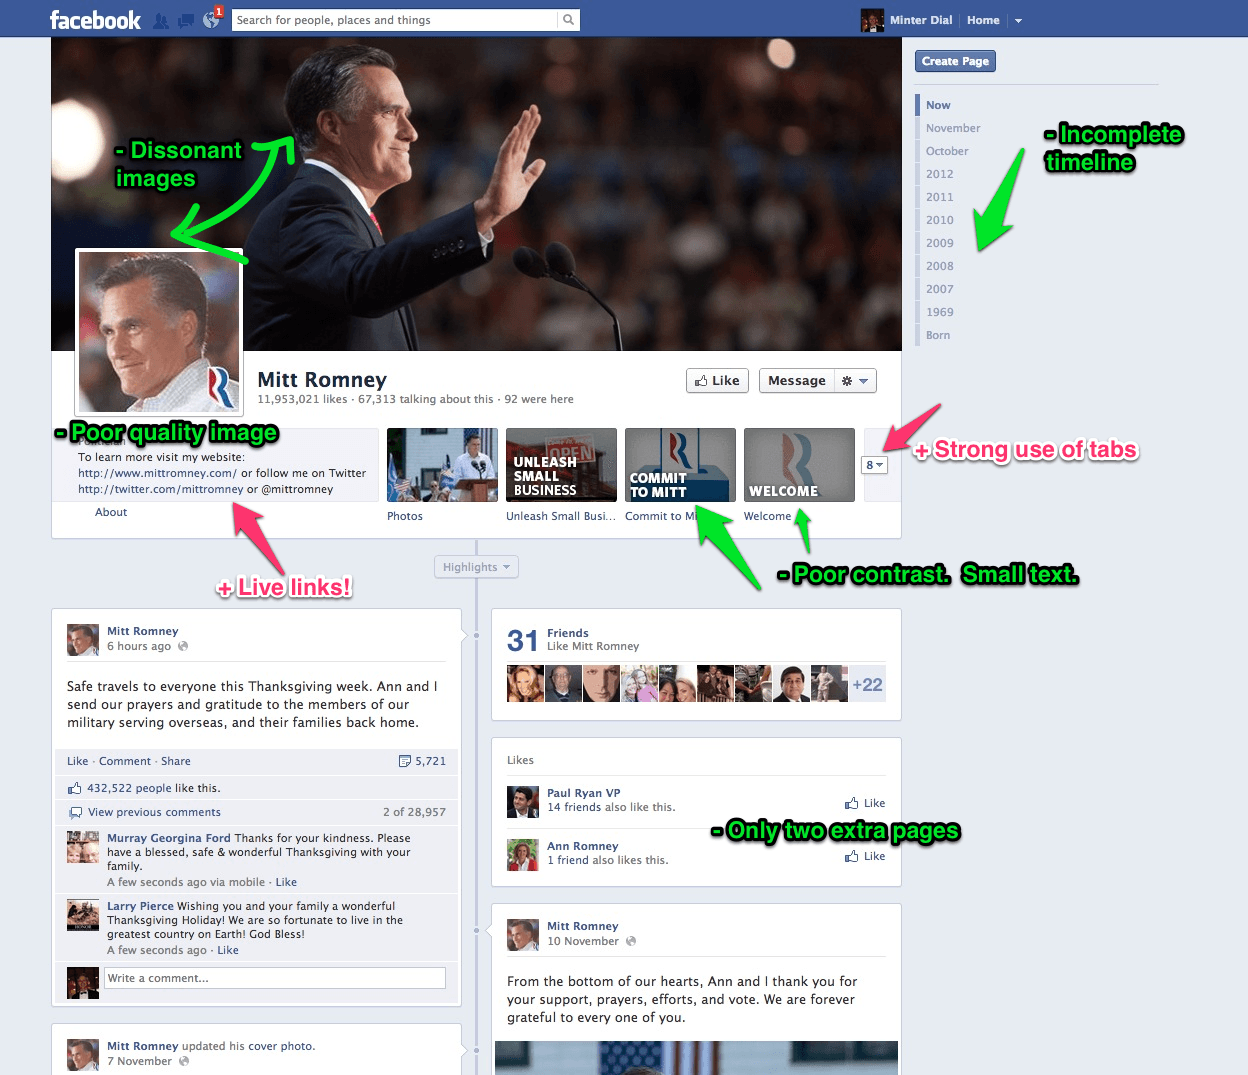 Romney Facebook page critique, The Myndset Digital Marketing and Brand strategy